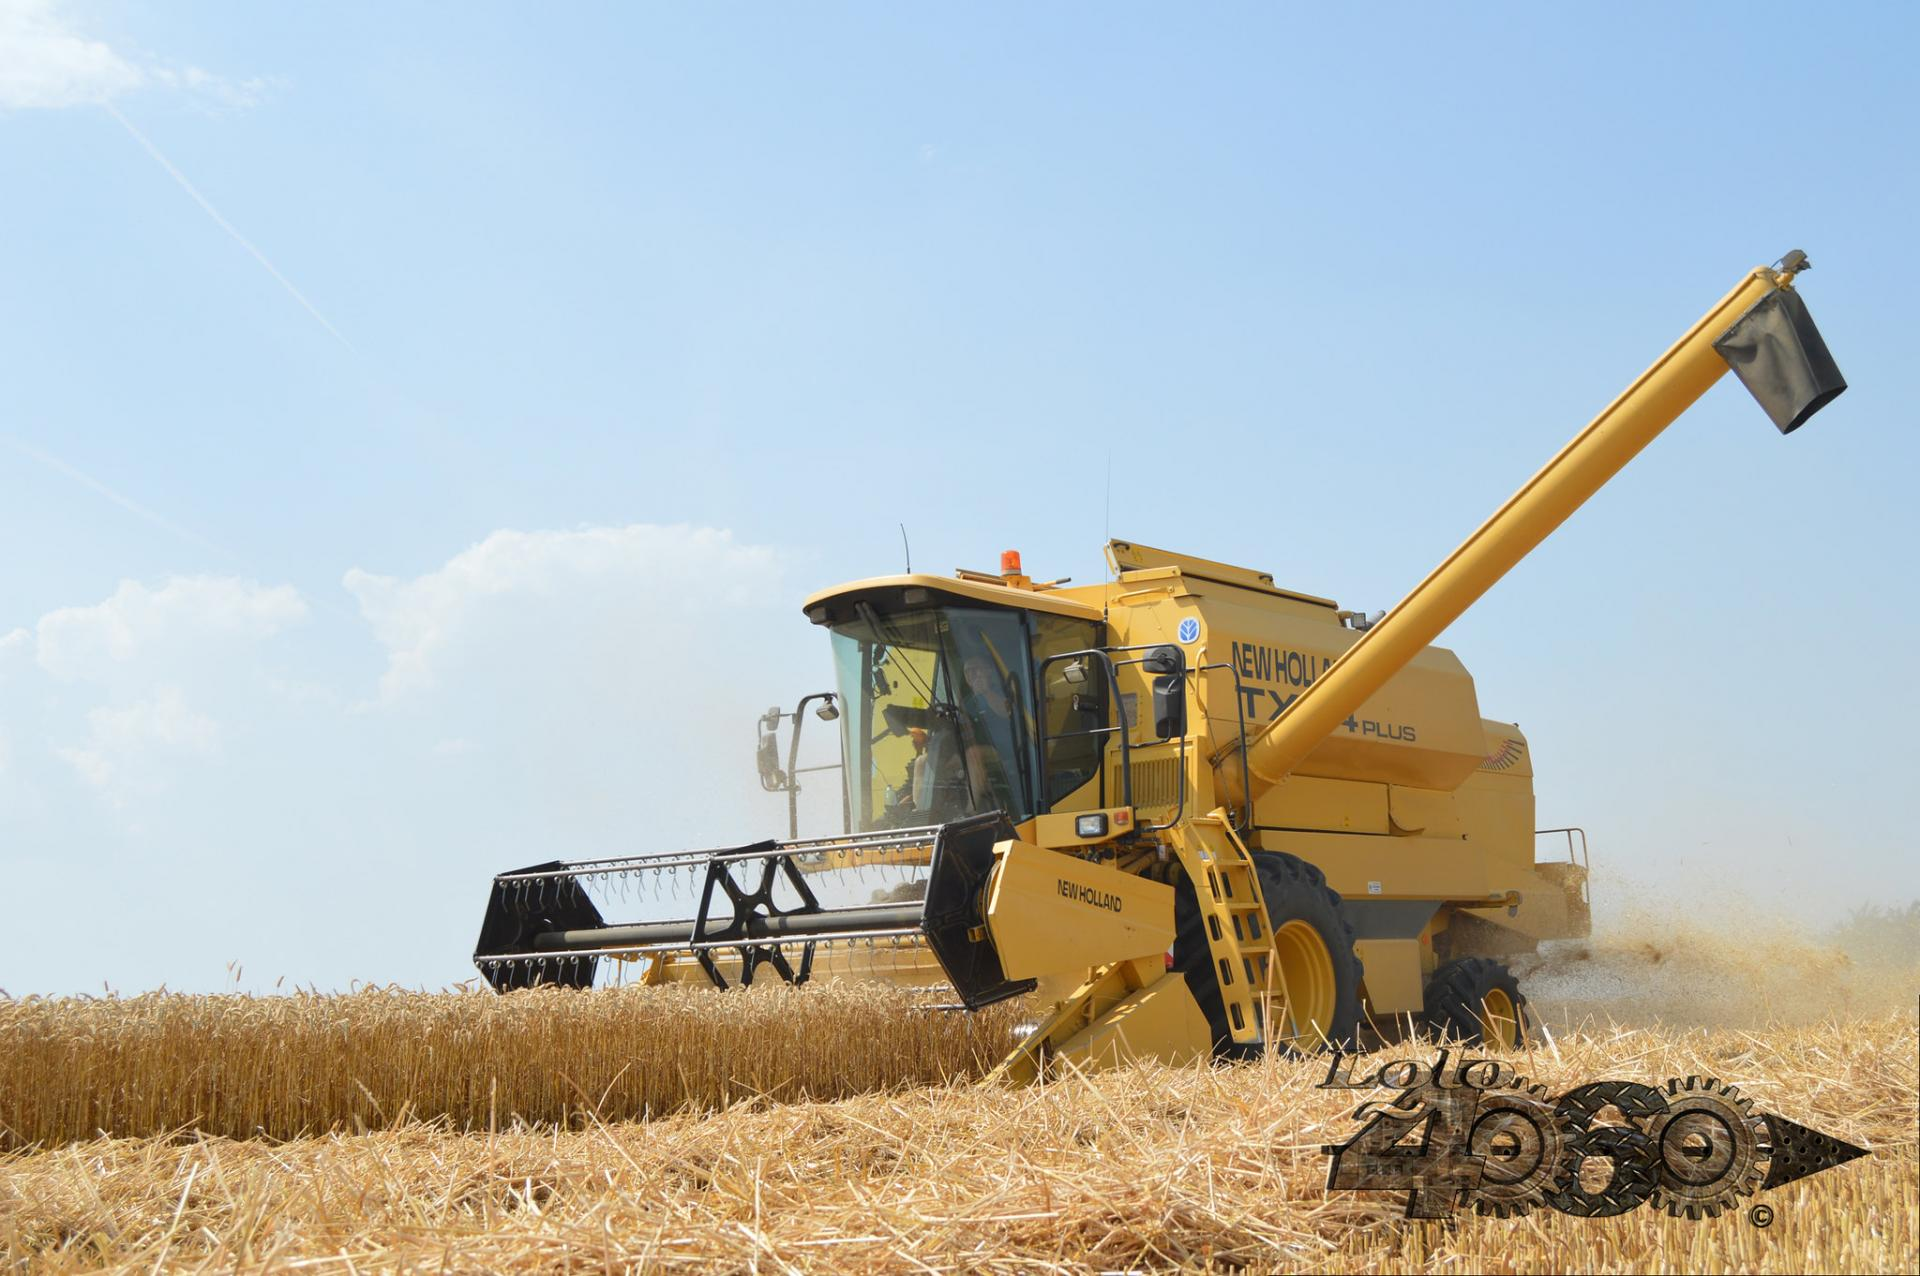 New Holland Tx64 plus